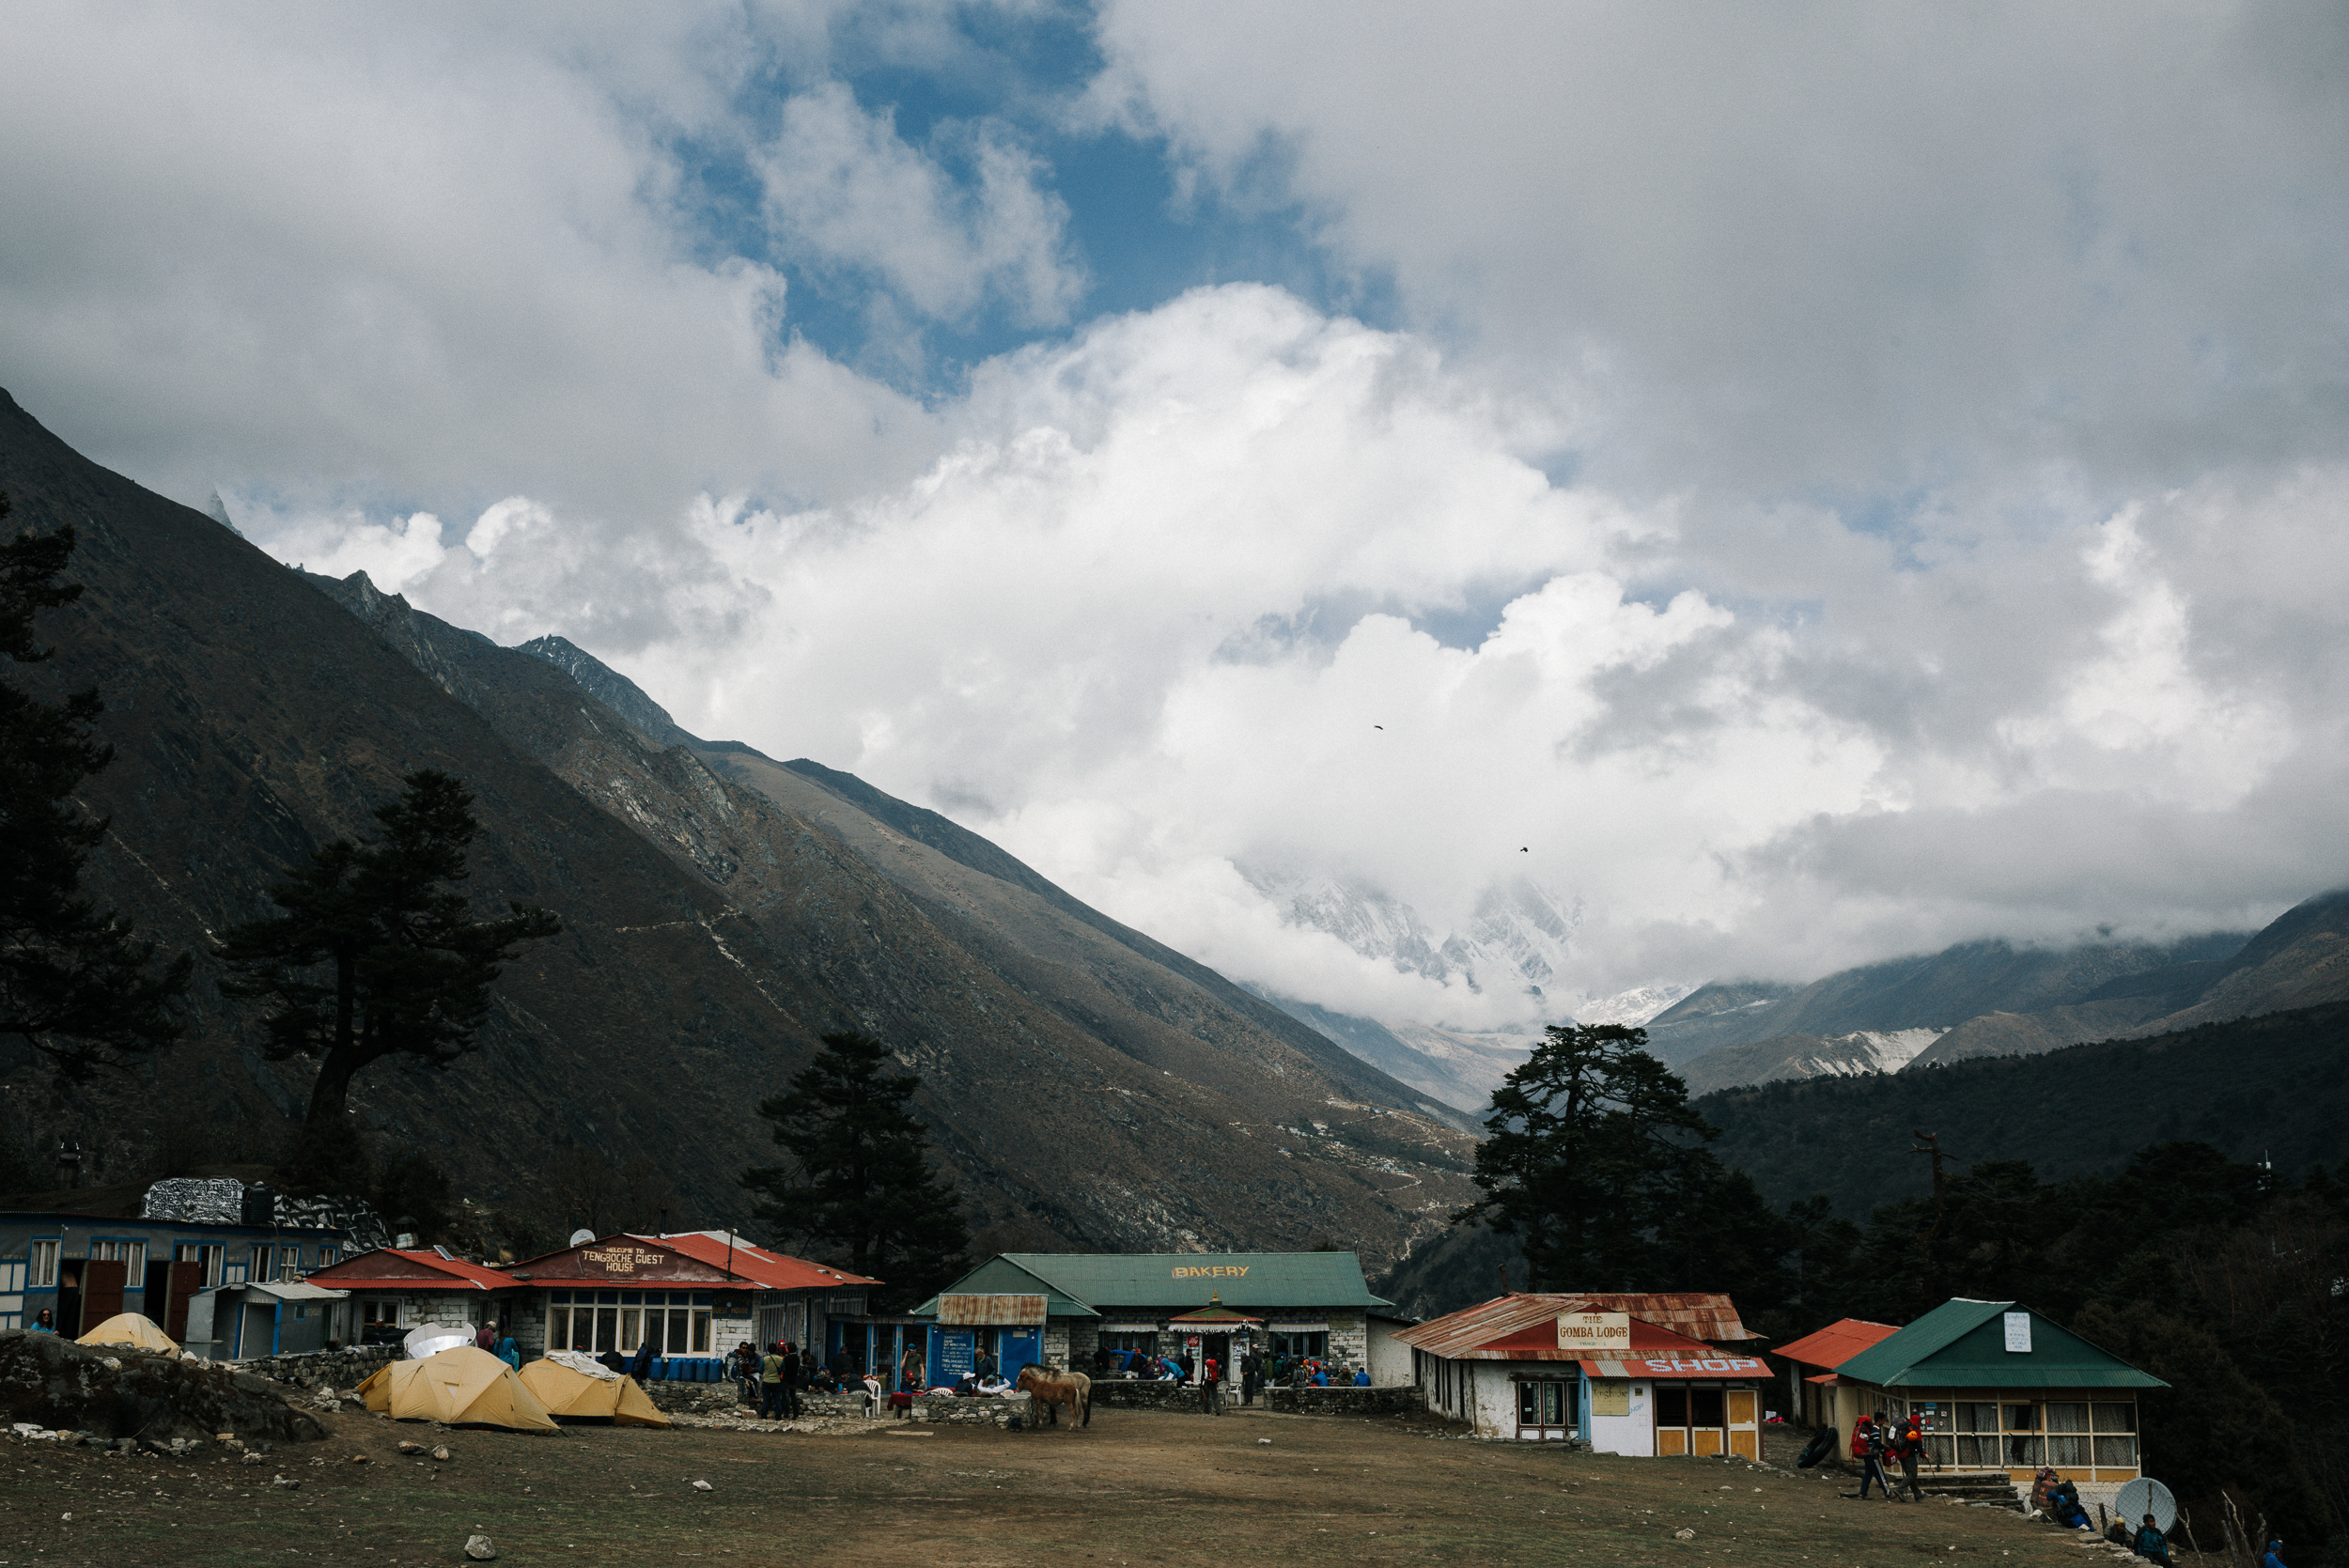 Nepal_EverestBaseCamp_2019_TaraShupe_Photography_DSC_3880.jpg